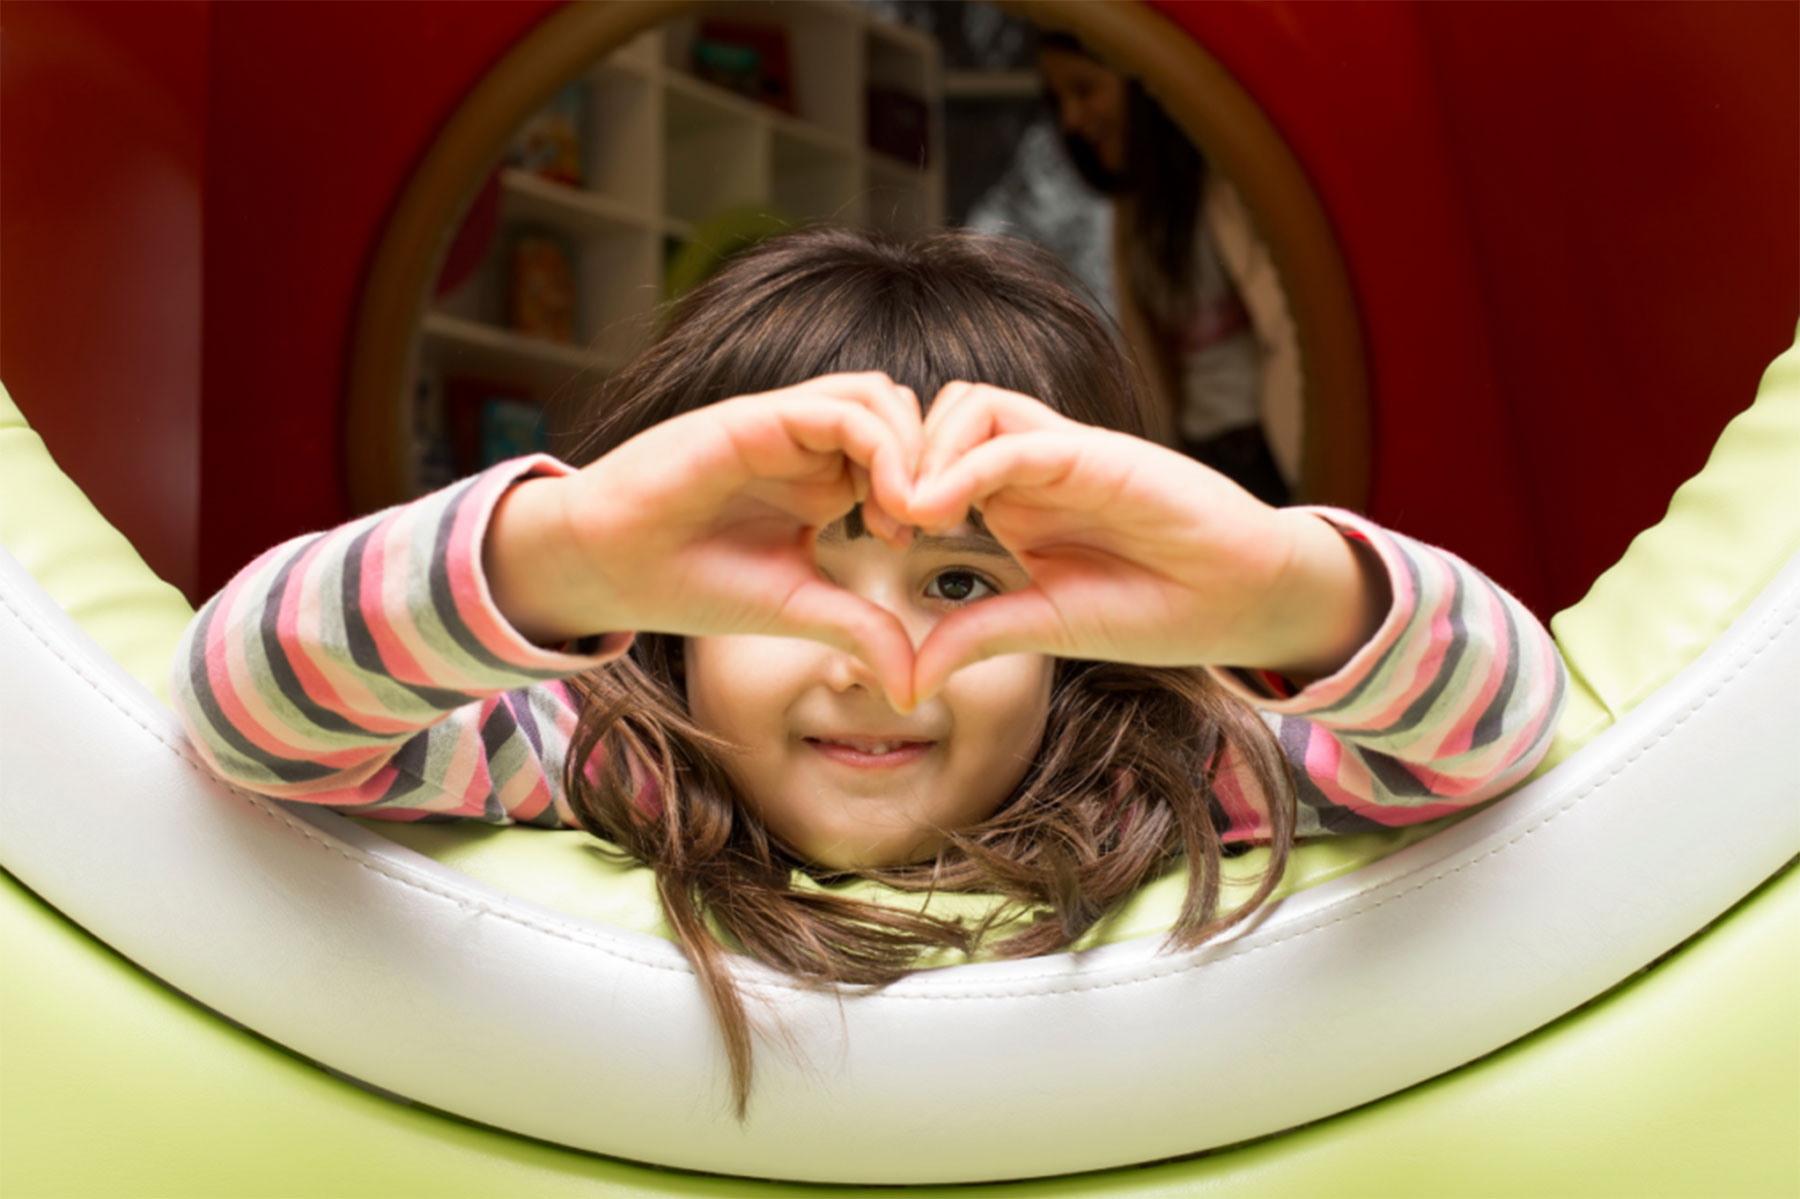 a child makes a heart with her hands